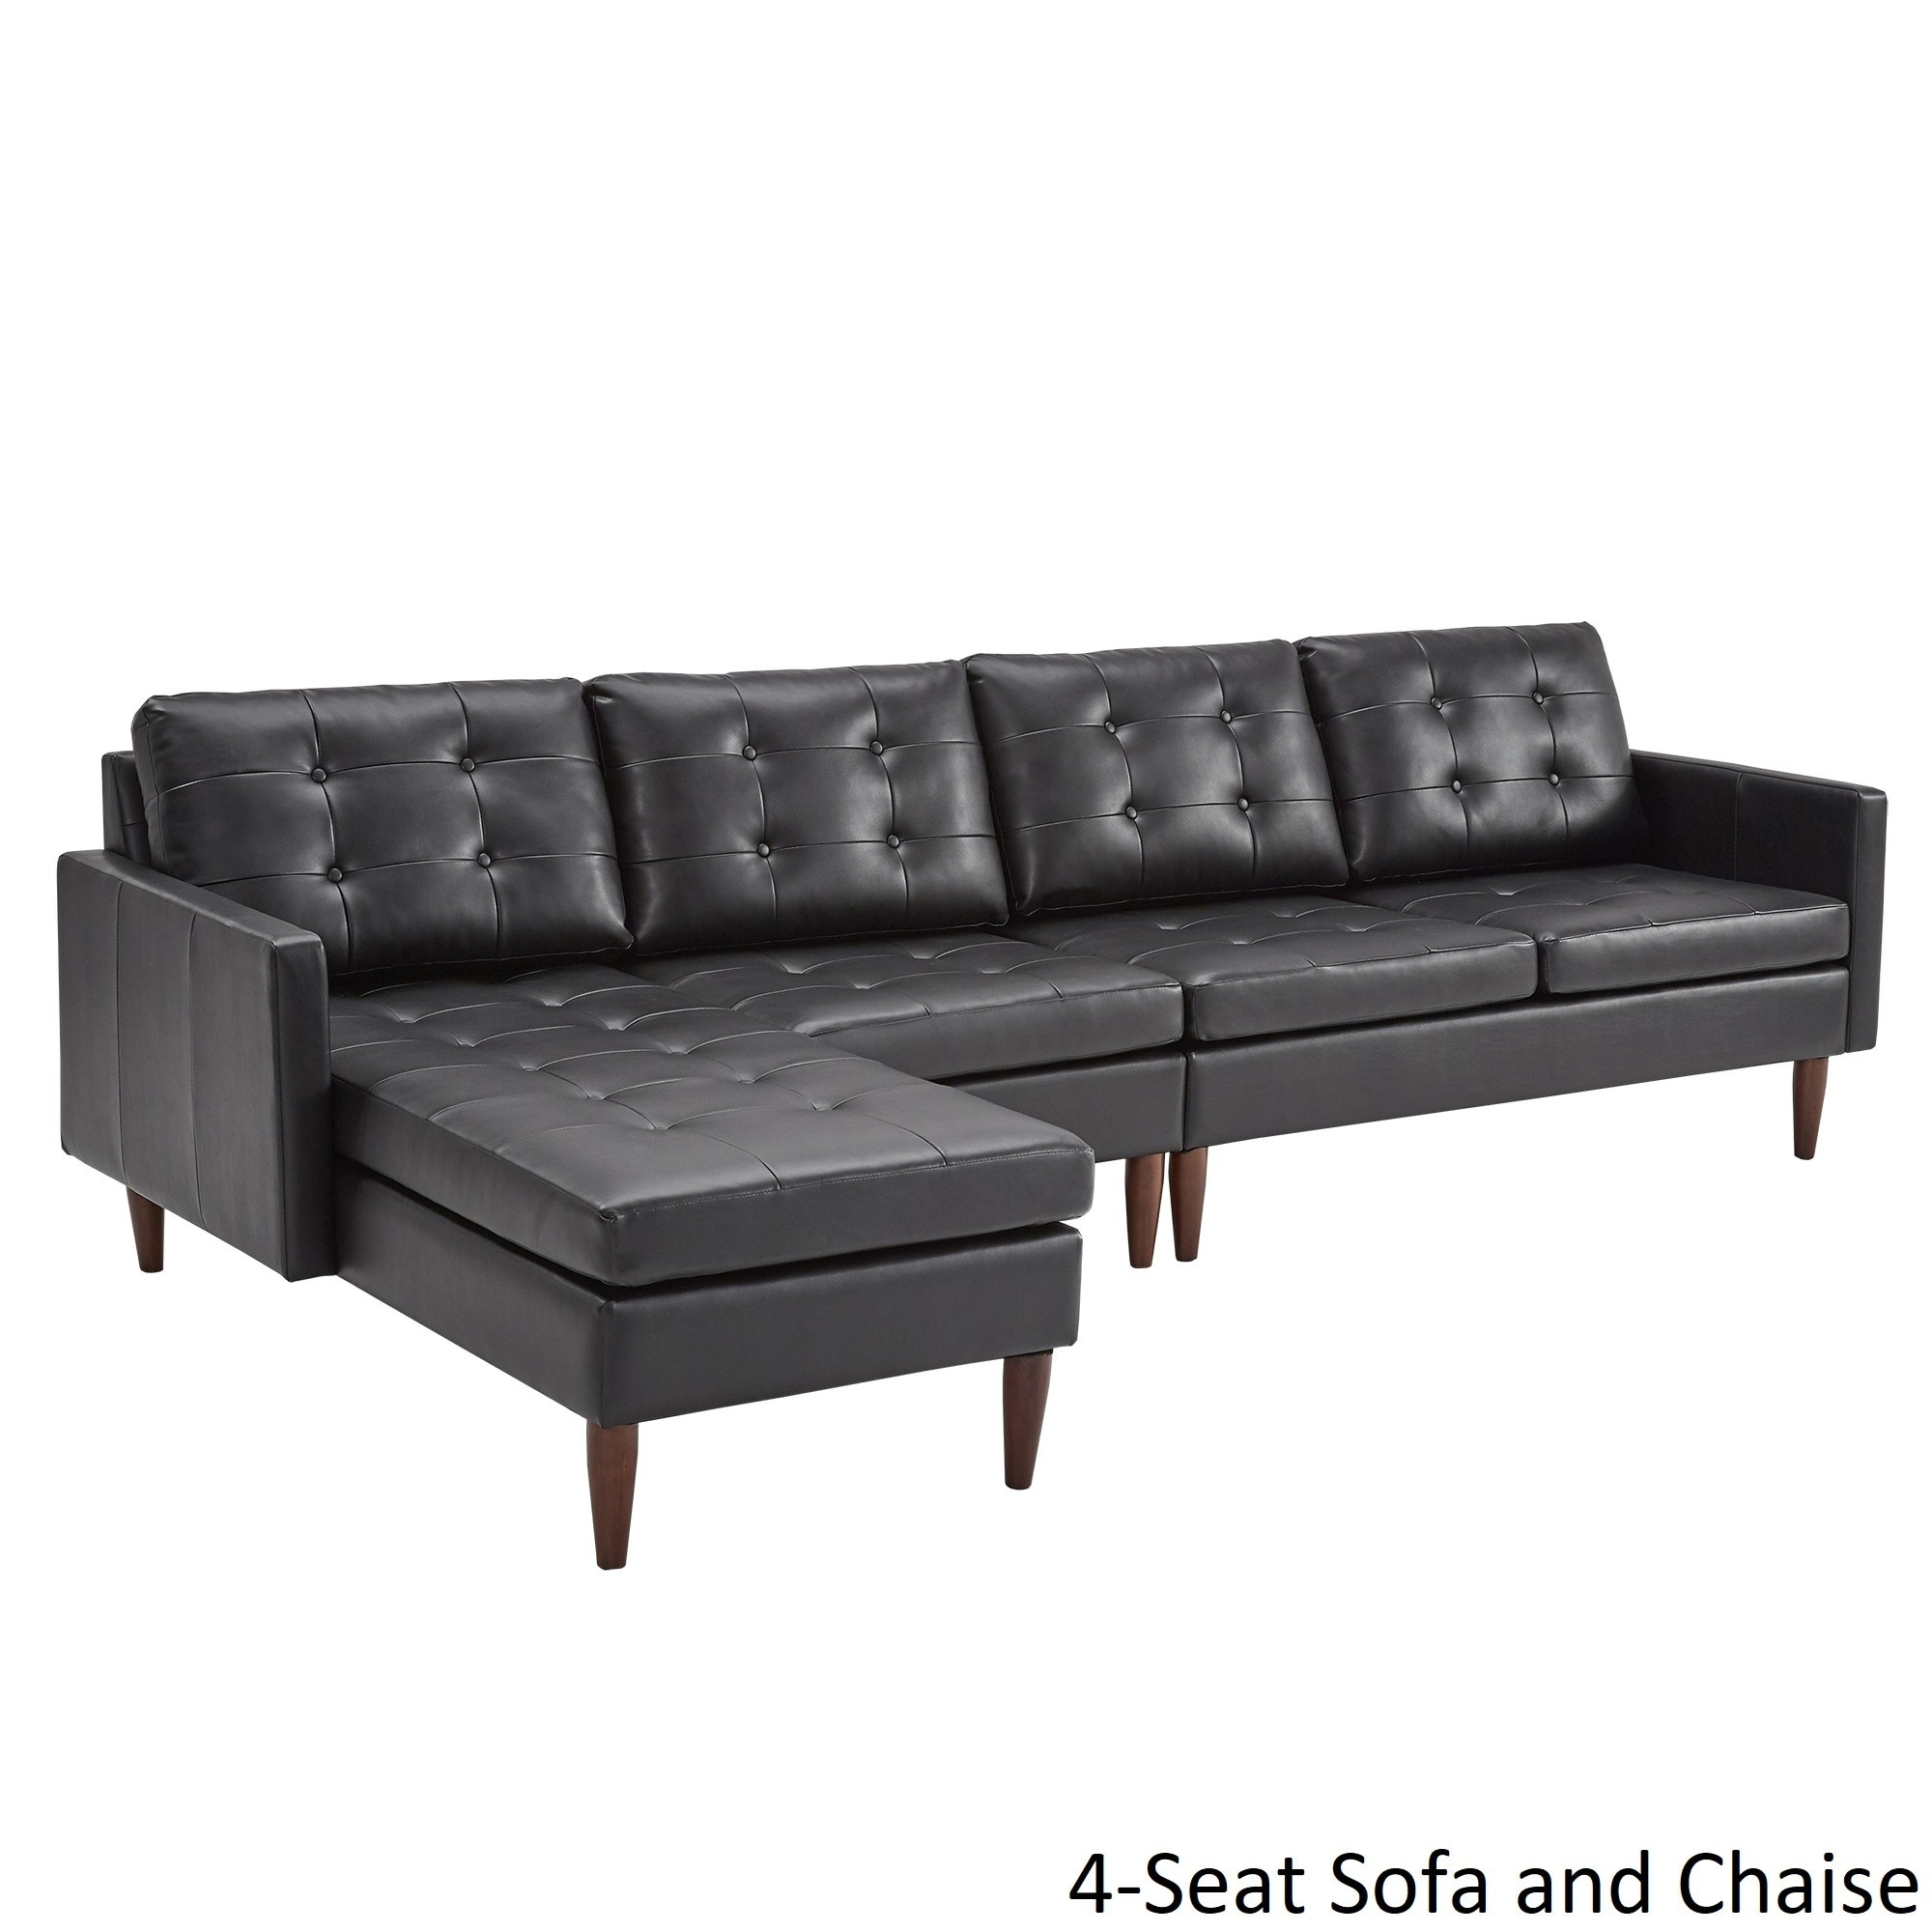 black leather sofa with chaise tosh furniture modern black leather sectional living room thesofa. Black Bedroom Furniture Sets. Home Design Ideas